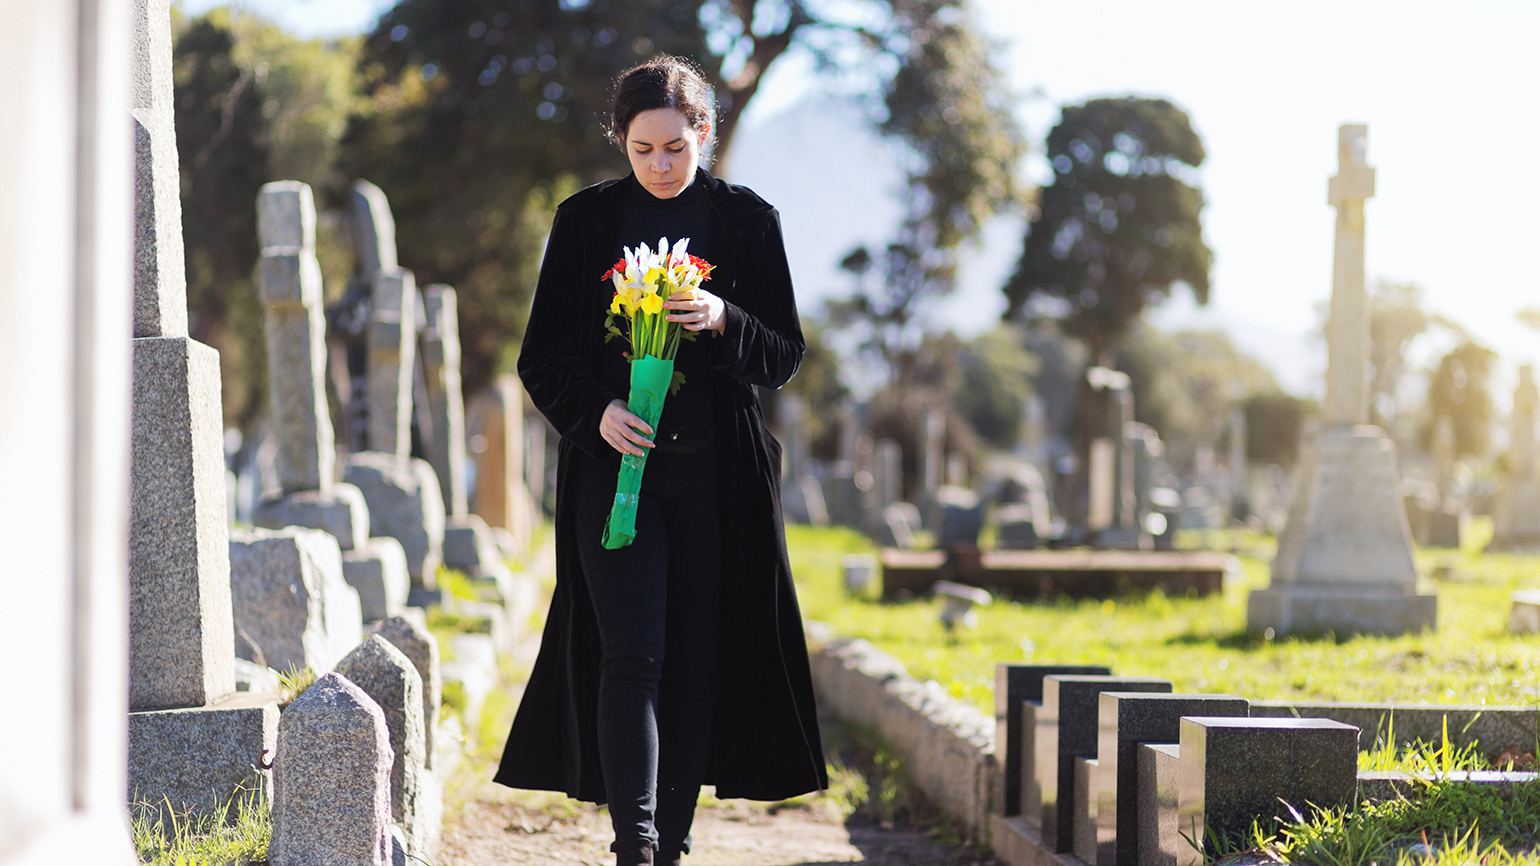 A grieving caregiver visits a cemetery